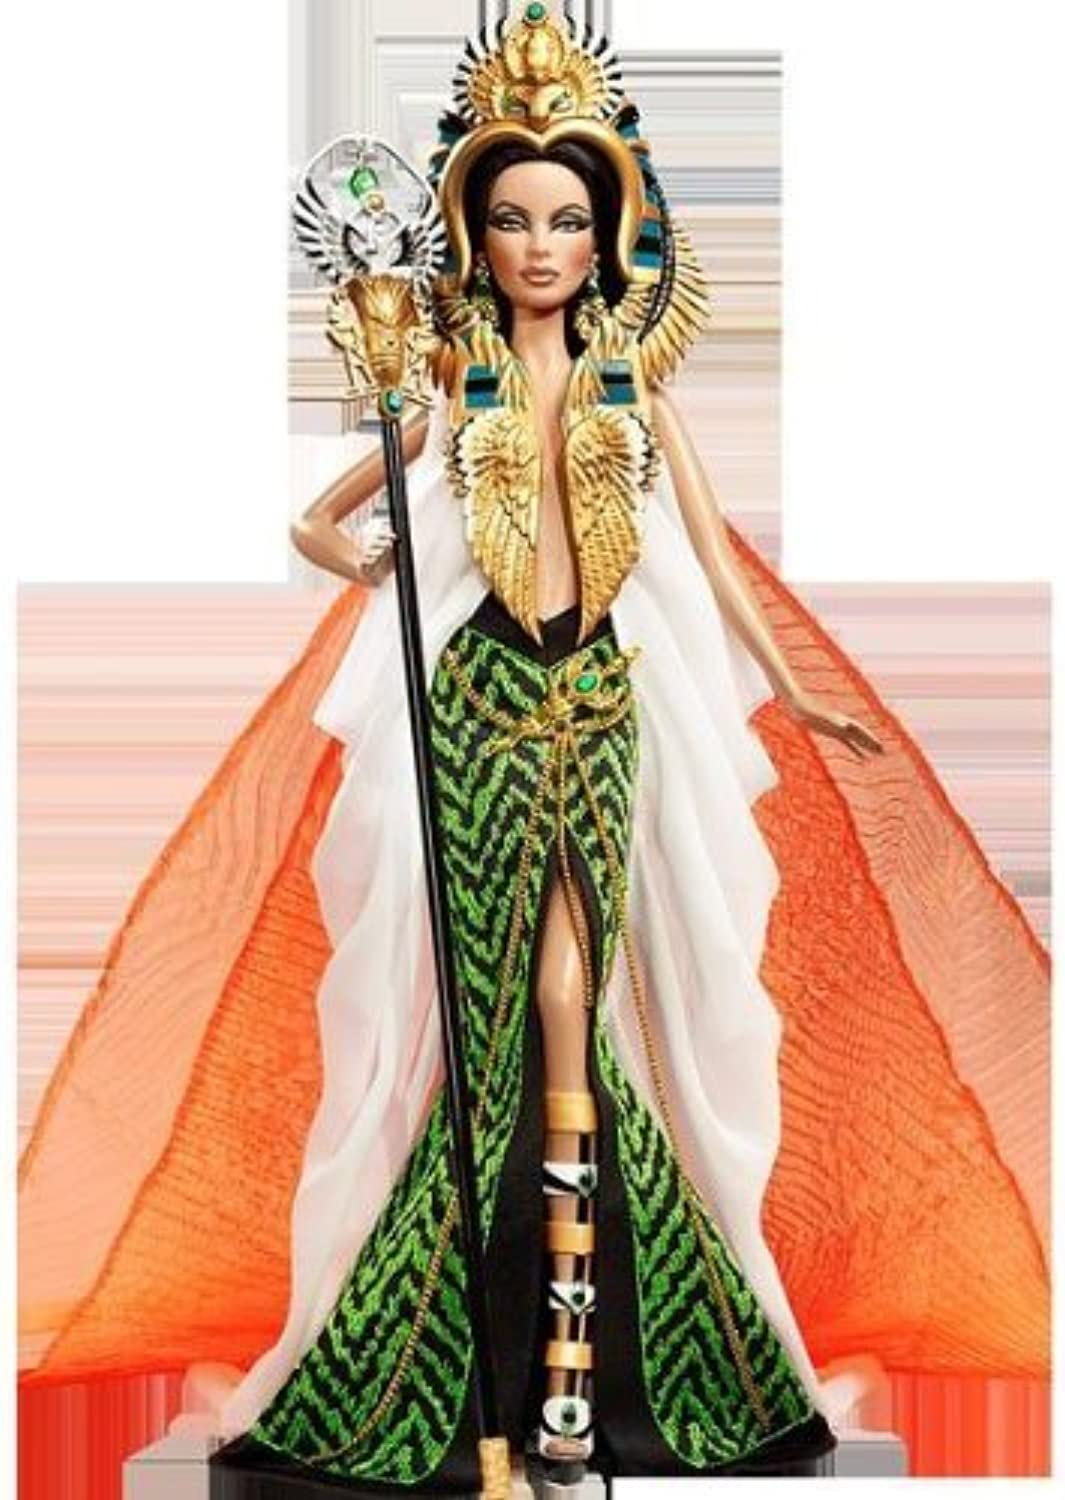 Barbie Doll - Cleopatra Barbie Doll Le 5400 Egyptian Barbie by Barbie